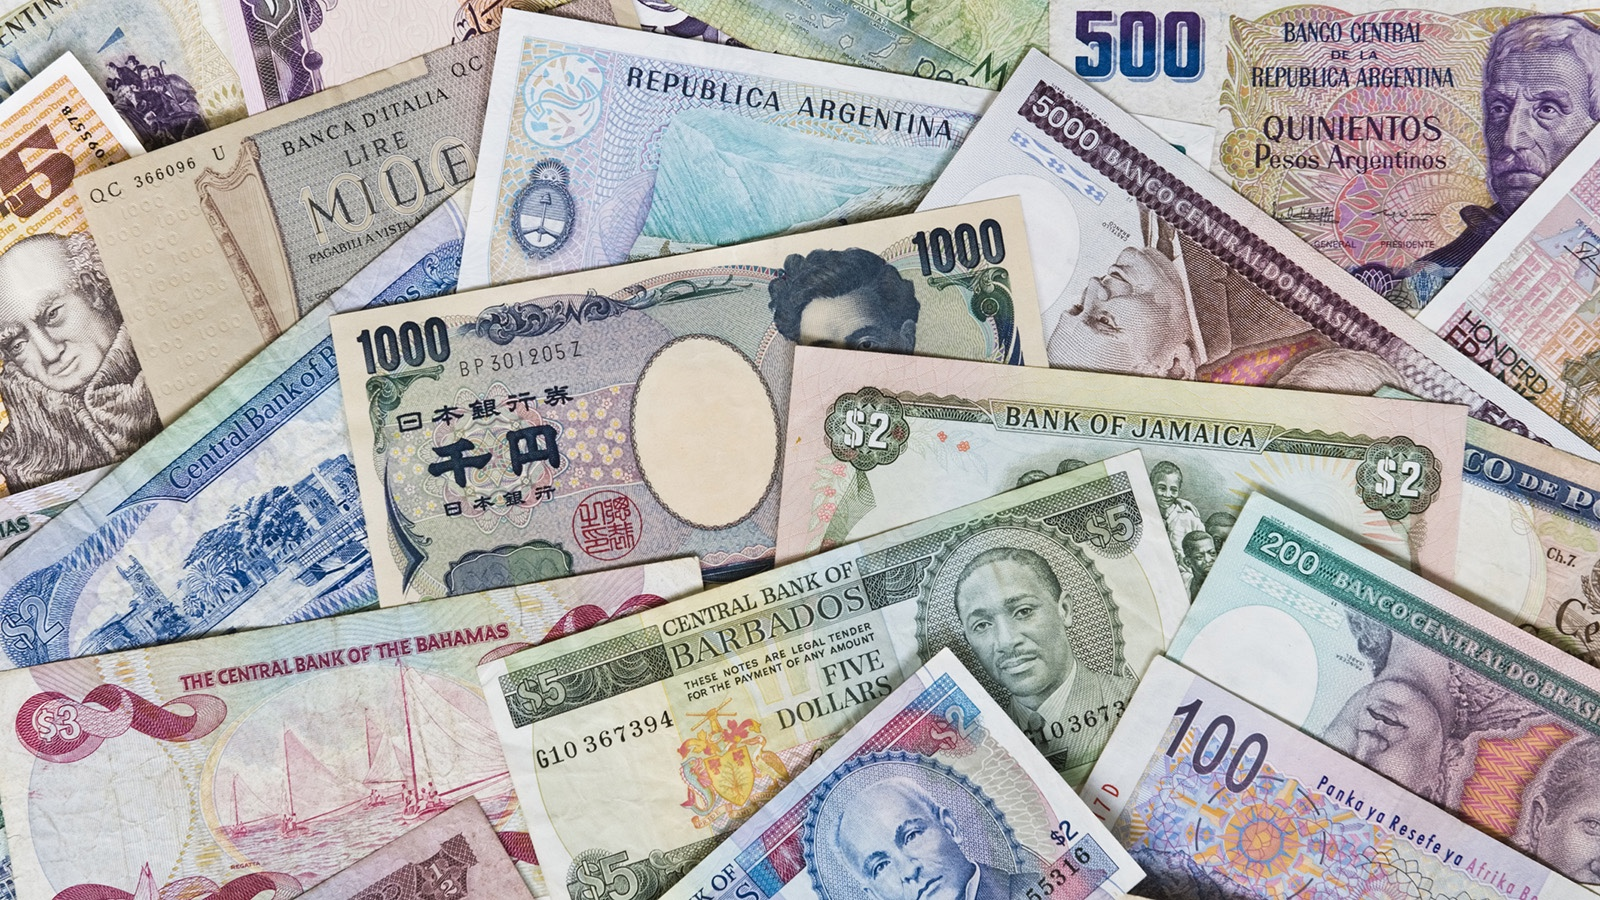 Money from various countries